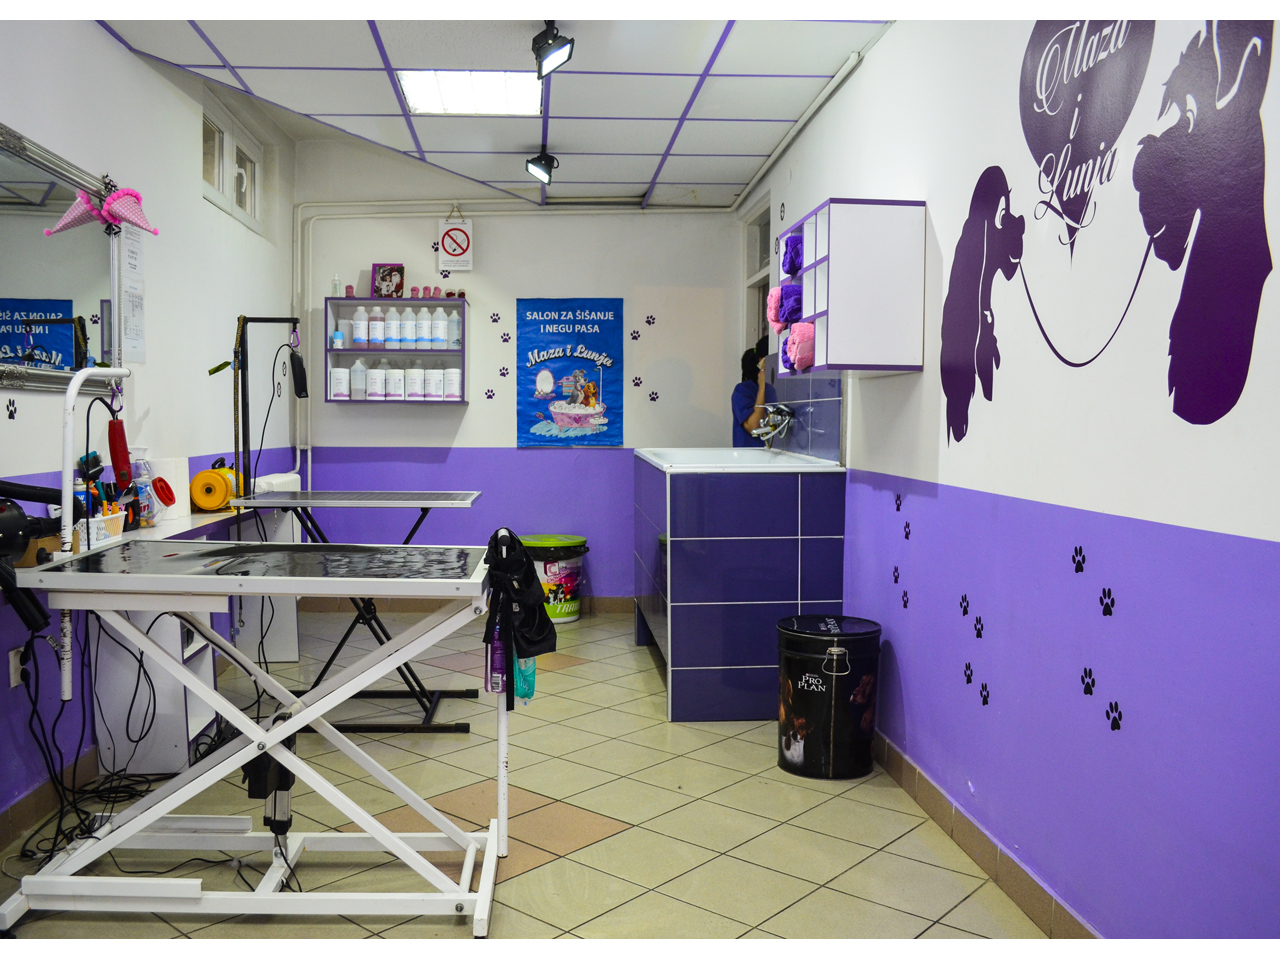 DOG SALON MAZA I  LUNJA Pet salon, dog grooming Beograd